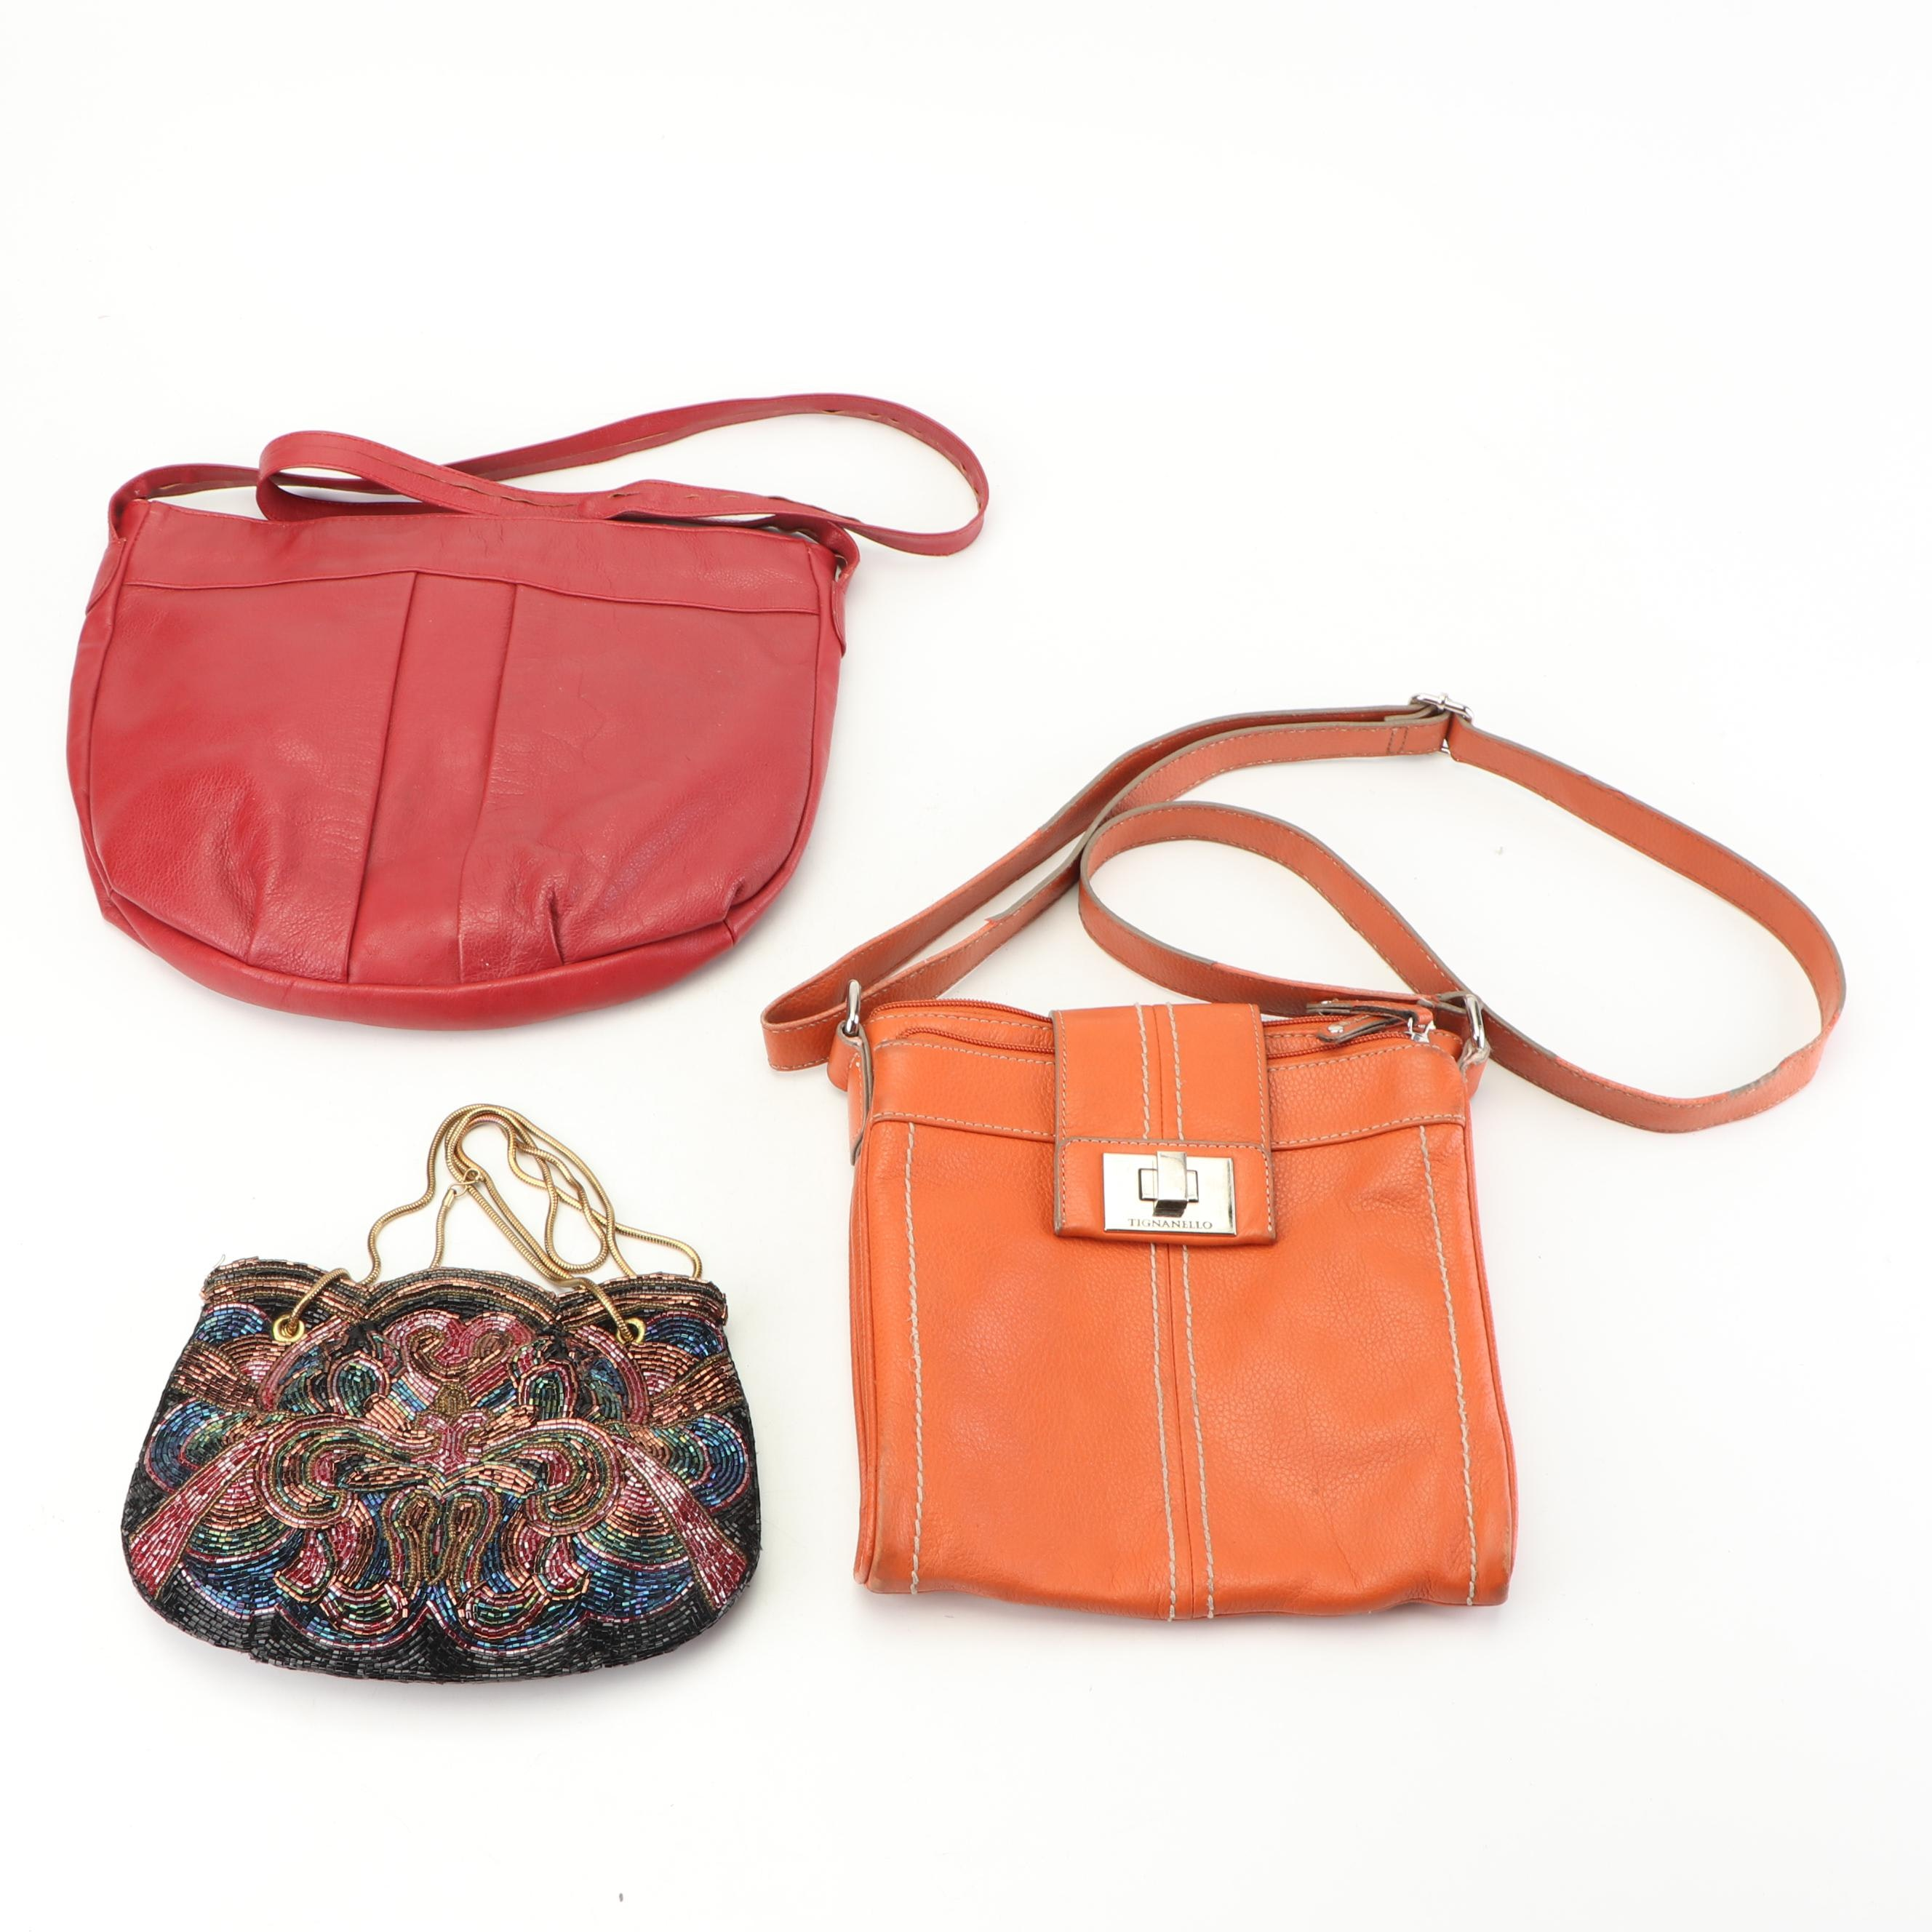 Pebbled Leather and Bead Embellished Handbags Including Tignanello